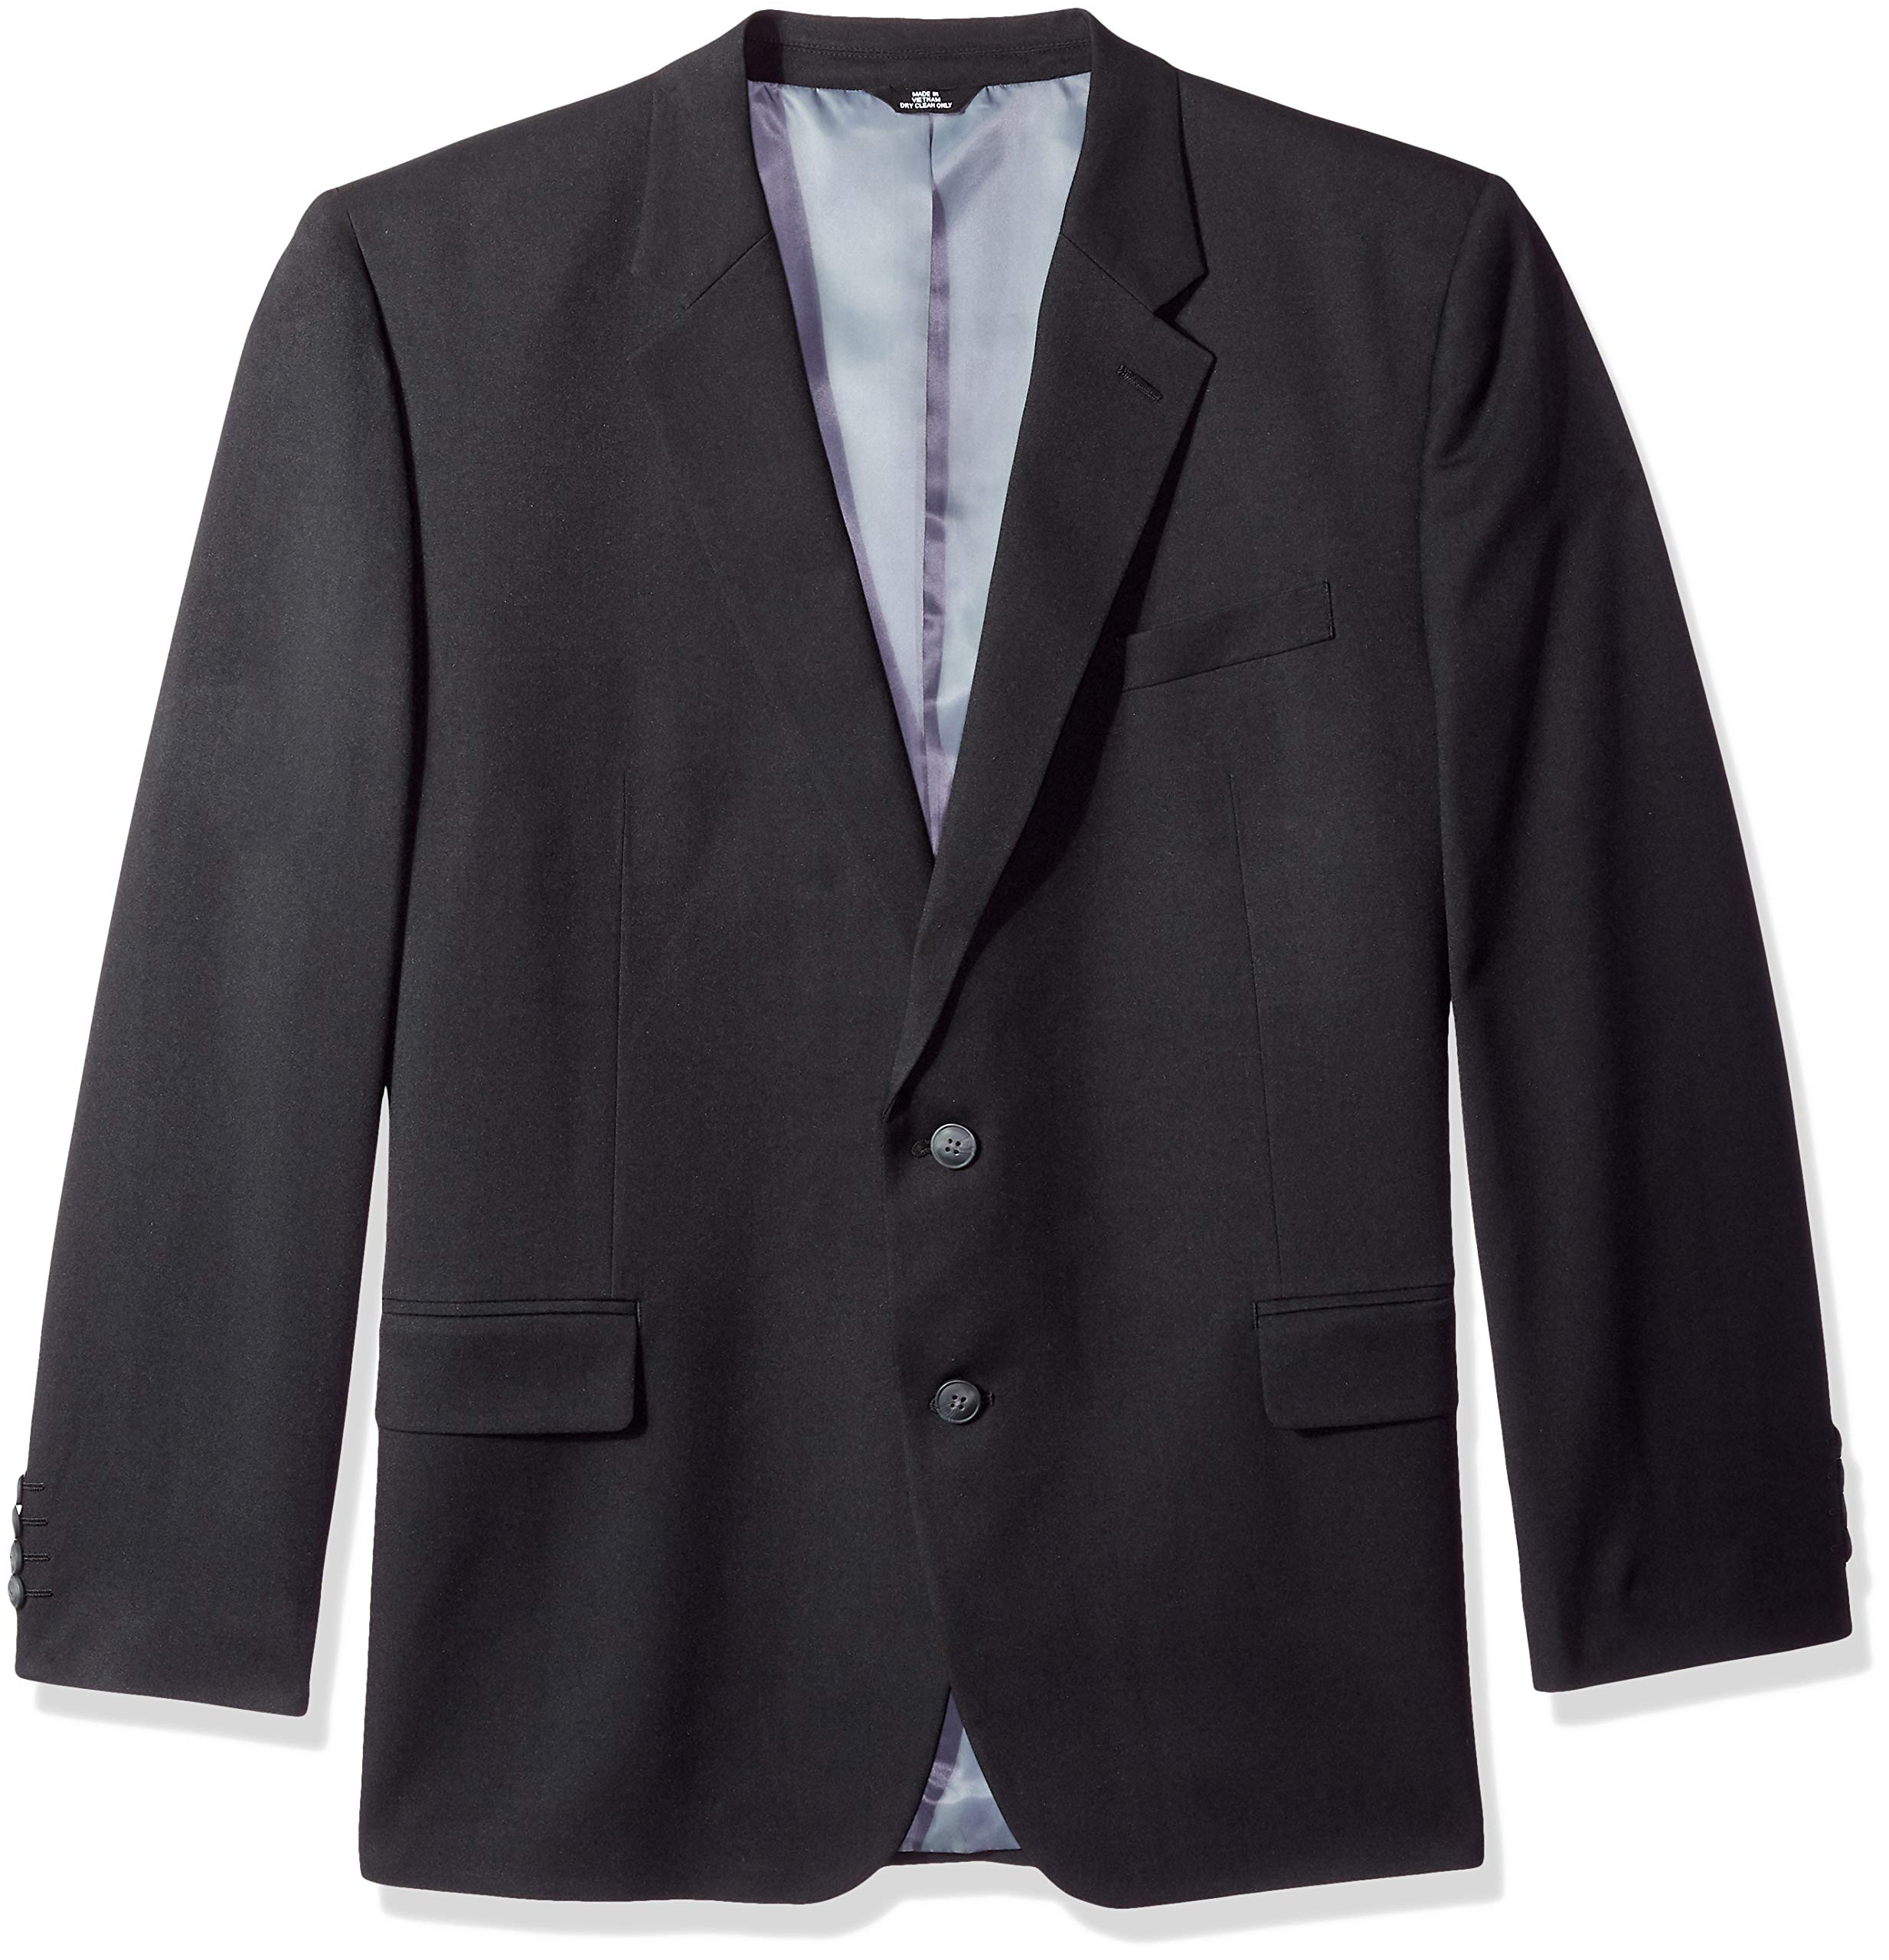 Haggar Men's Big and Tall B&T Heather Twill Stretch Classic Fit Suit Separate Coat, Black, 50R by Haggar